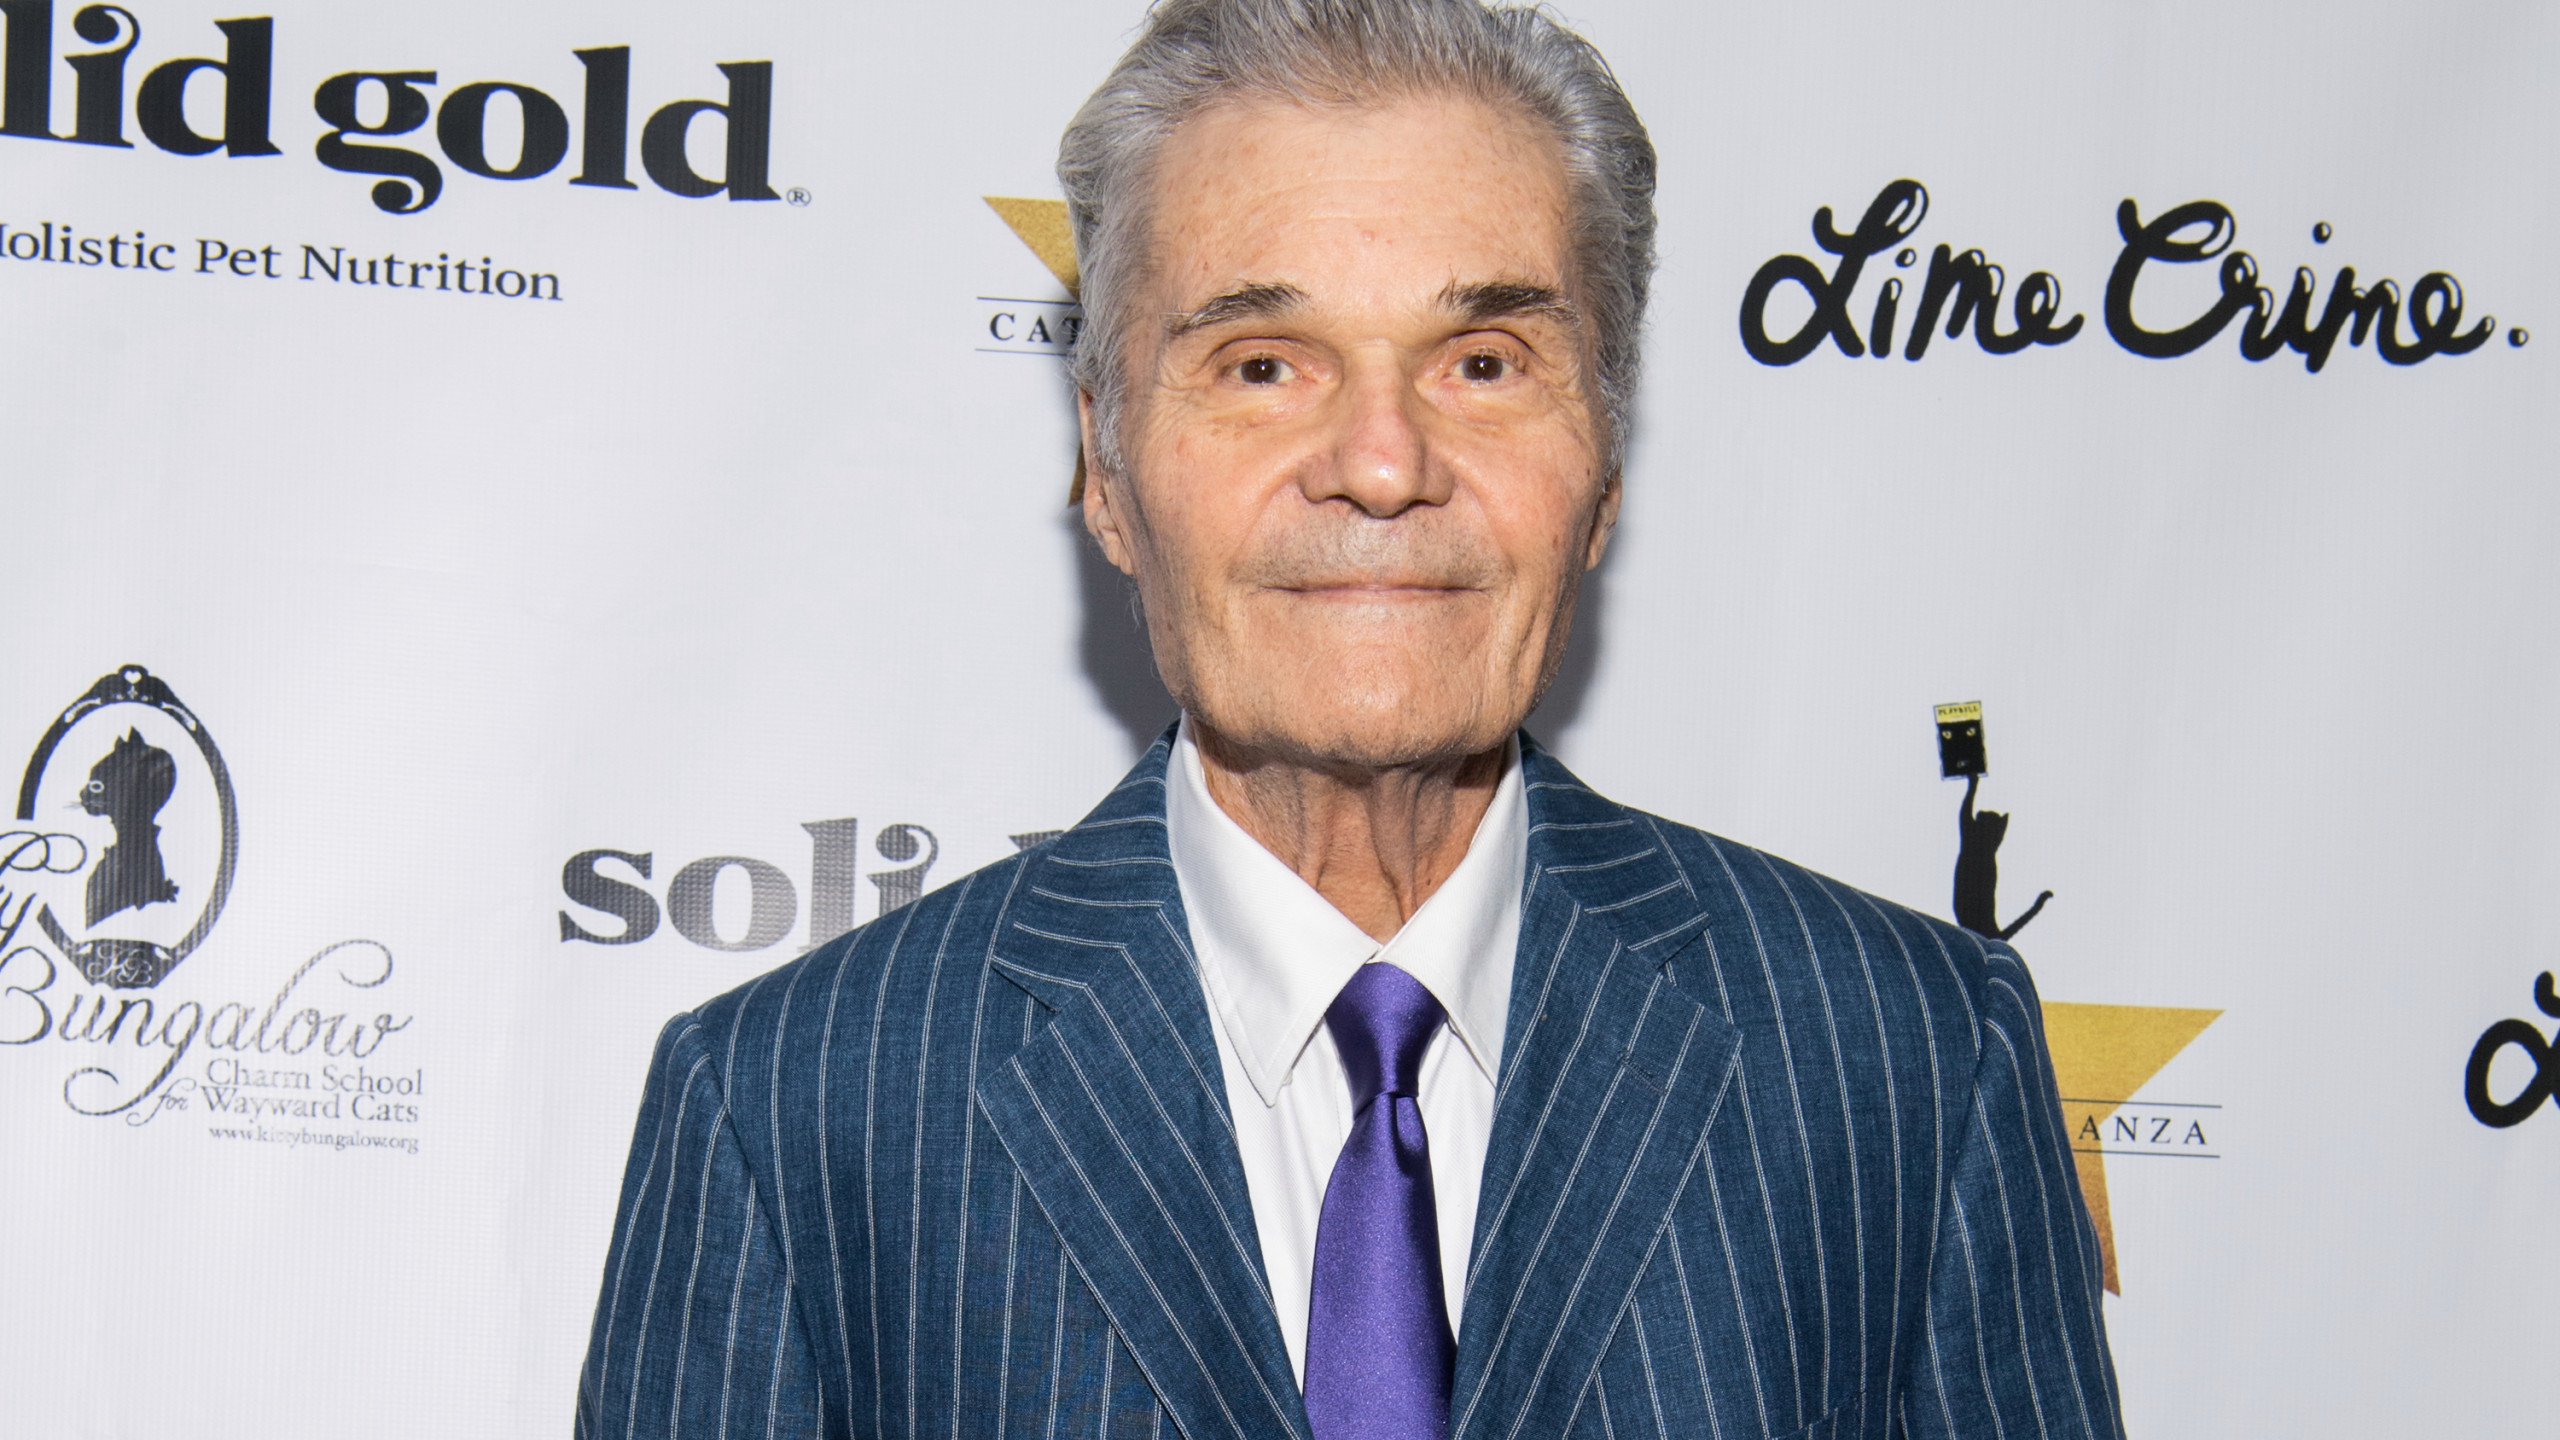 Actor Fred Willard attends 'CATstravaganza featuring Hamilton's Cats' on April 21, 2018 in Hollywood, California. (Photo by Emma McIntyre/Getty Images for Kitty Bungalow)